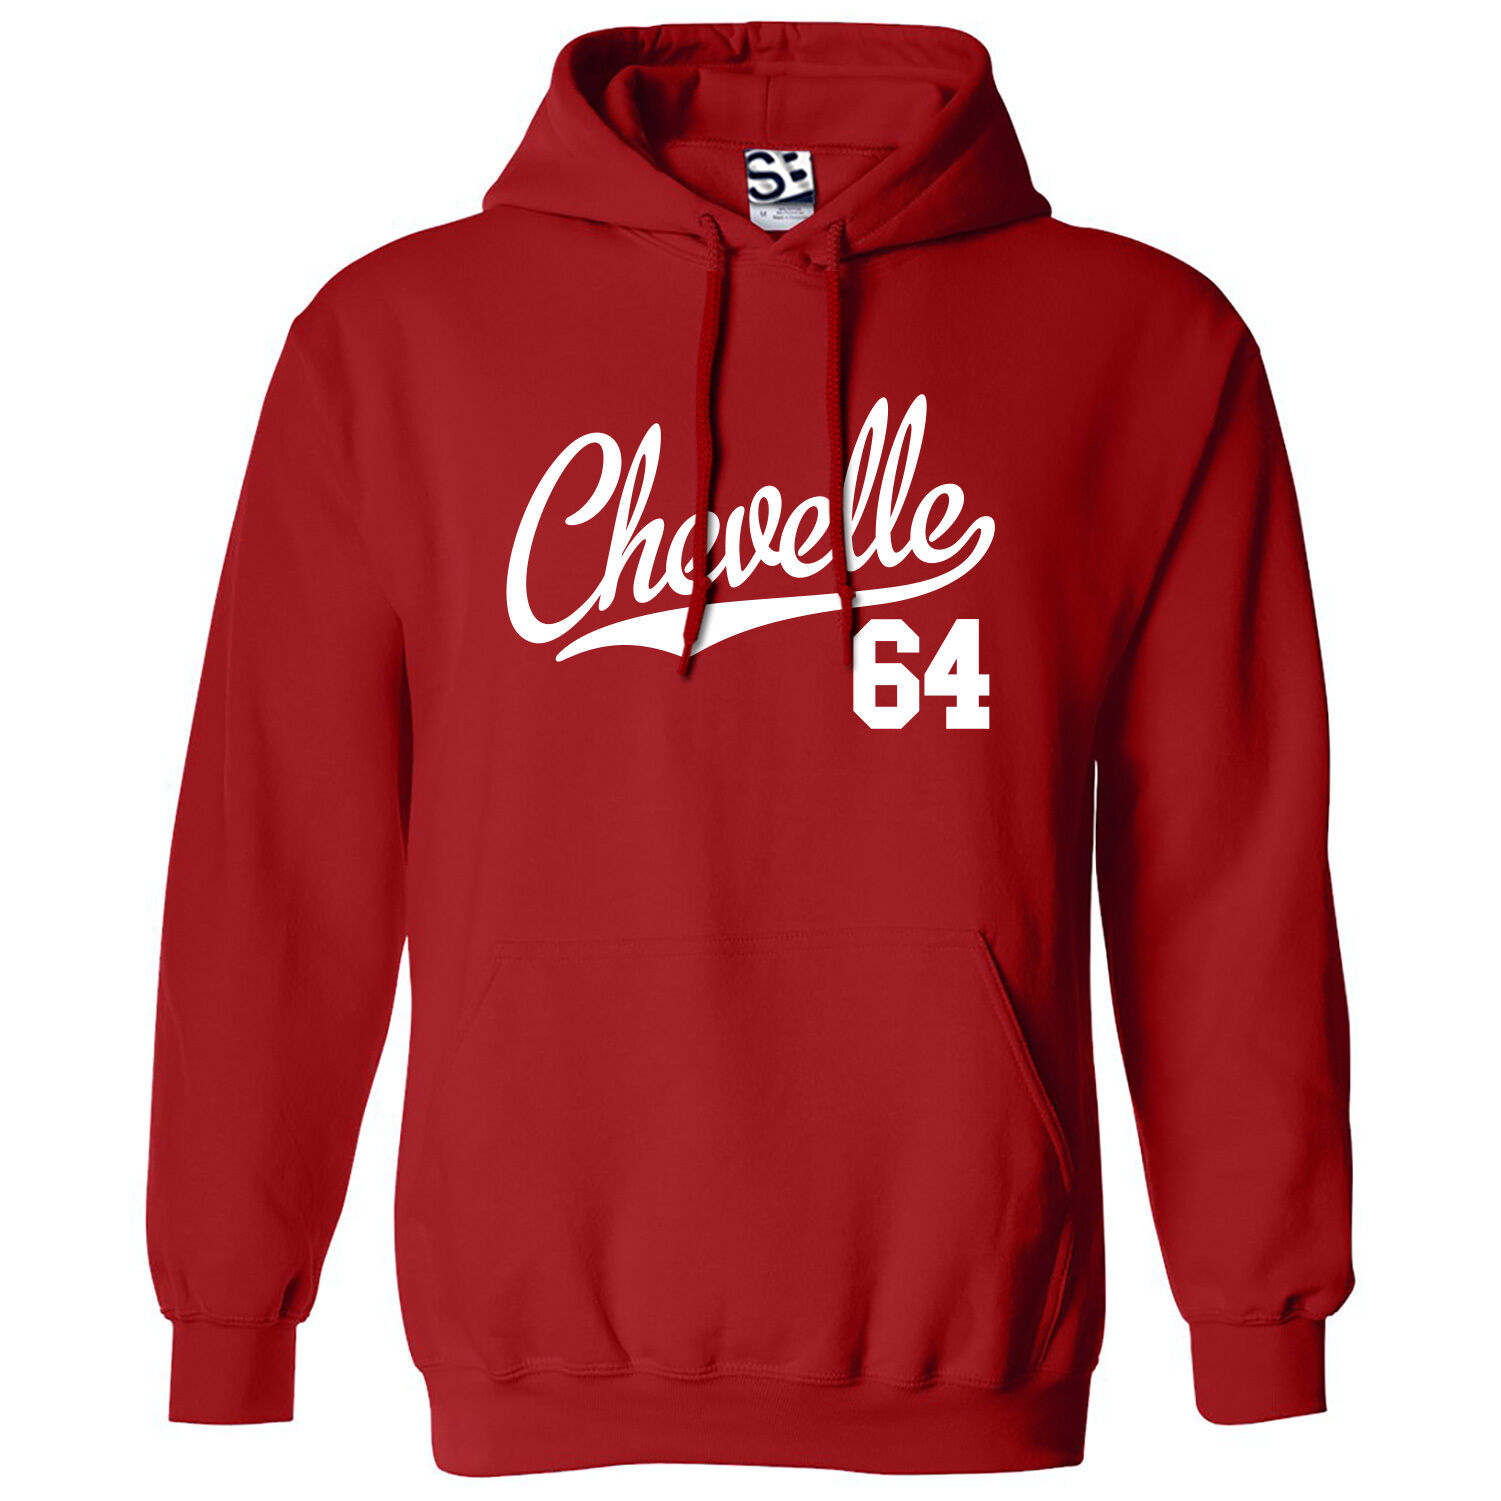 Chevelle 64 Script & Tail HOODIE - Hooded 1964 Muscle Car Sweatshirt All Farbes